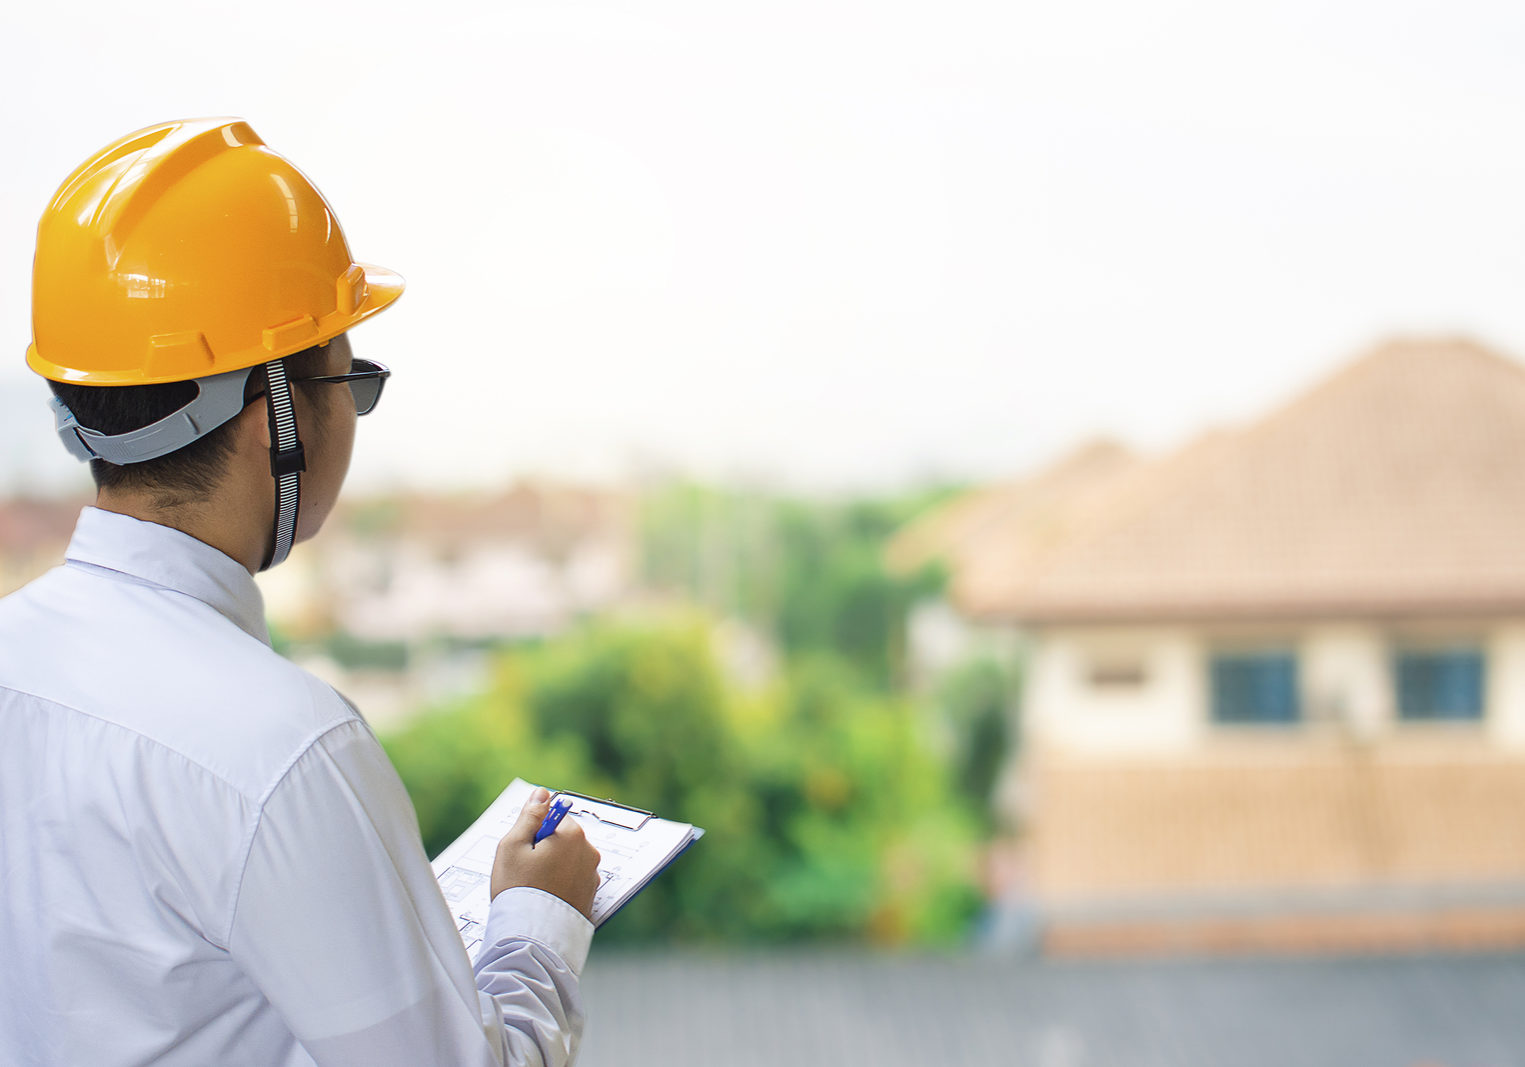 Male engineer inspection checking in home With note on notepad or home blurred background.Metaphor Quality inspection or Production speed For the best quality to customers.